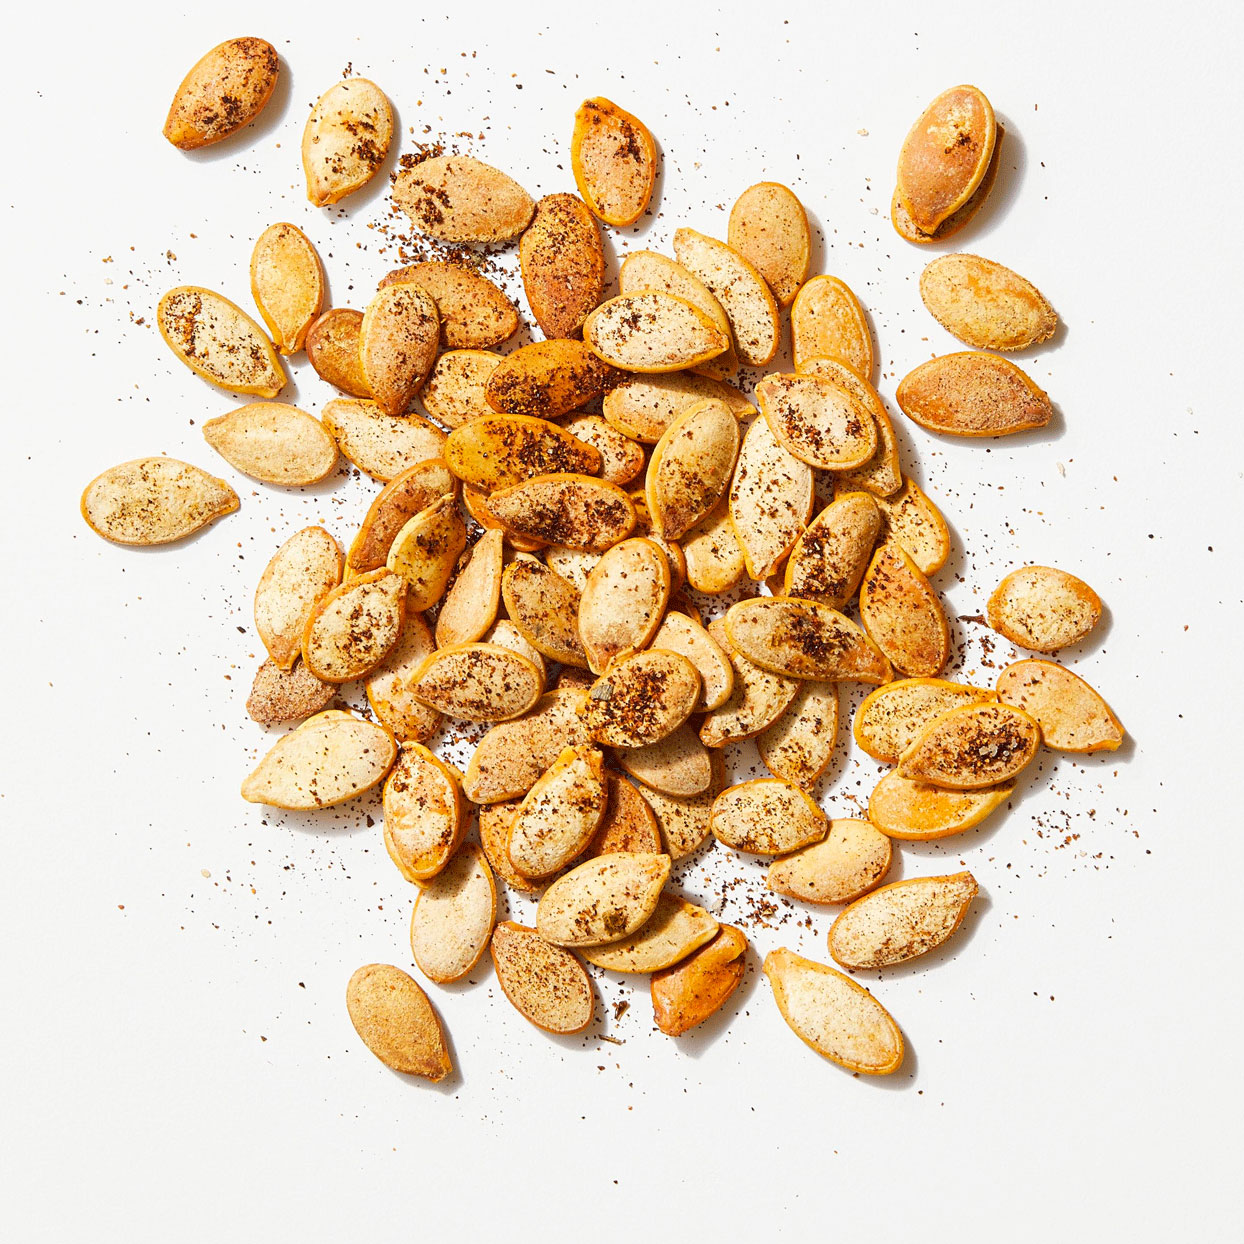 Smoky Pumpkin Seeds